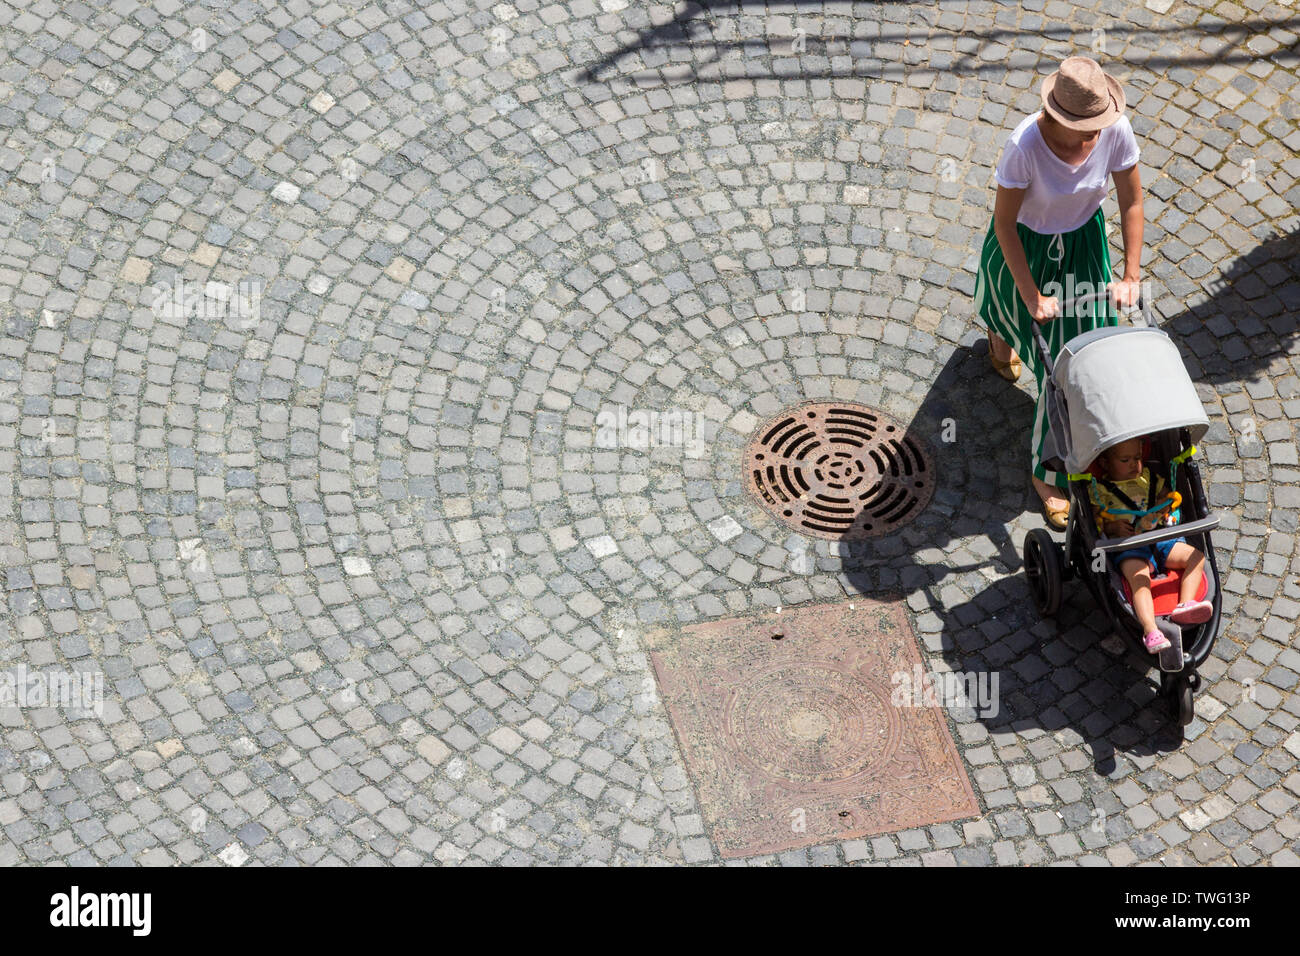 Mother pushing baby buggy against cobble stone pavement shot from the Heroes Tower, Kőszeg, Hungary - Stock Image